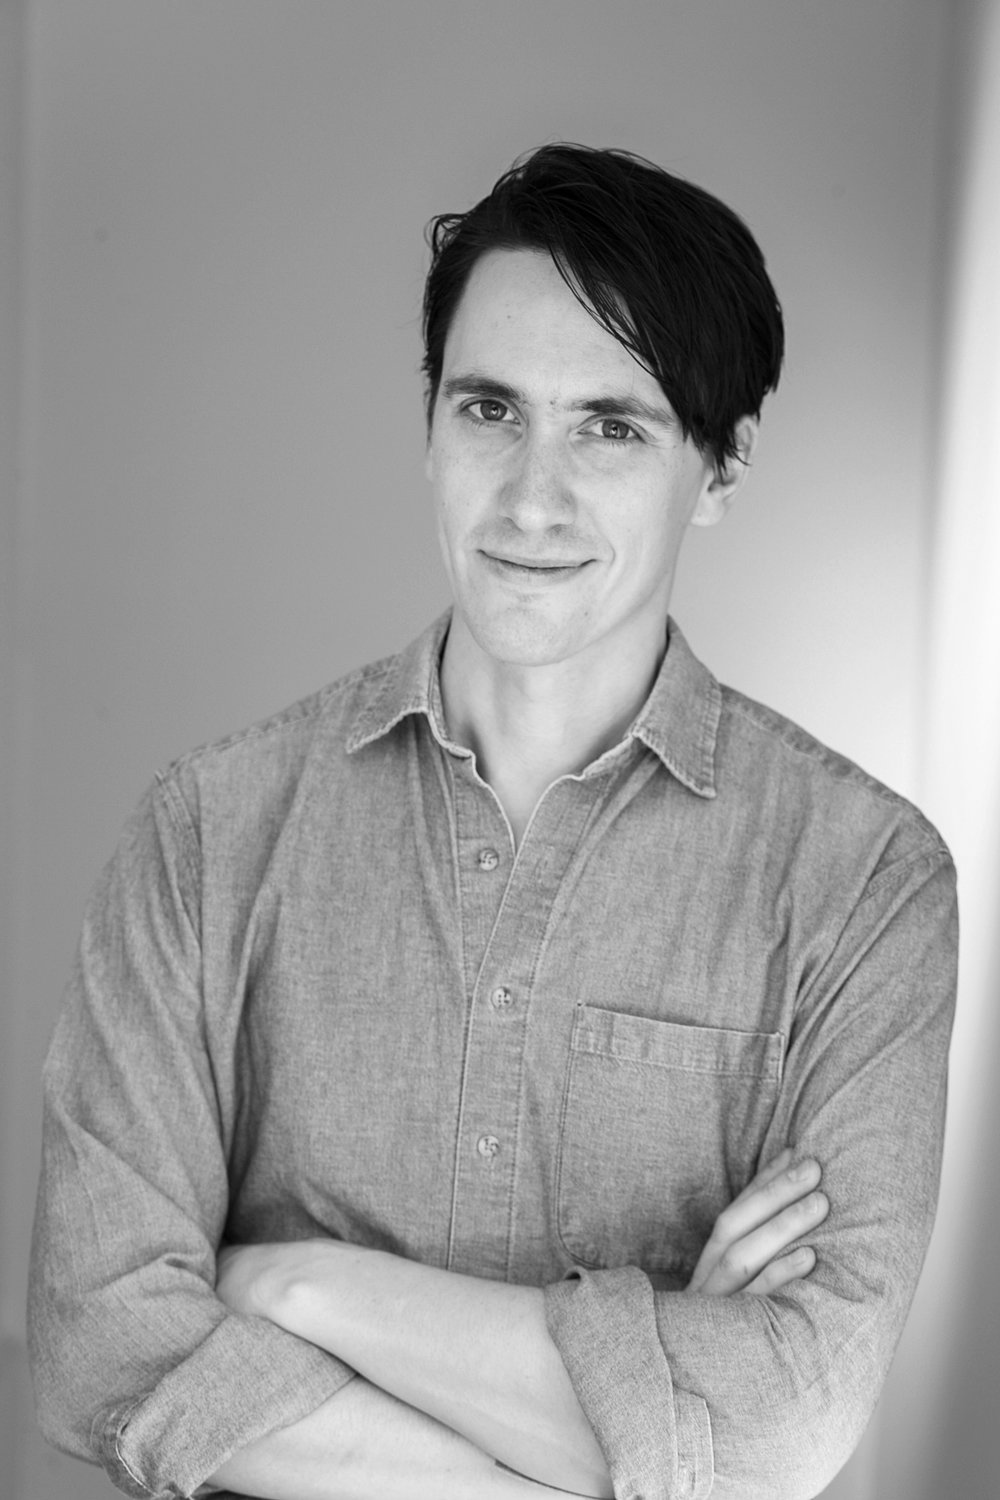 Marshall Crook - Marshall is a video journalist and documentary filmmaker based in New York City.He currently works for NBC News as a producer for their Digital Documentaries team. His work covers politics, culture and social issues.His first film,